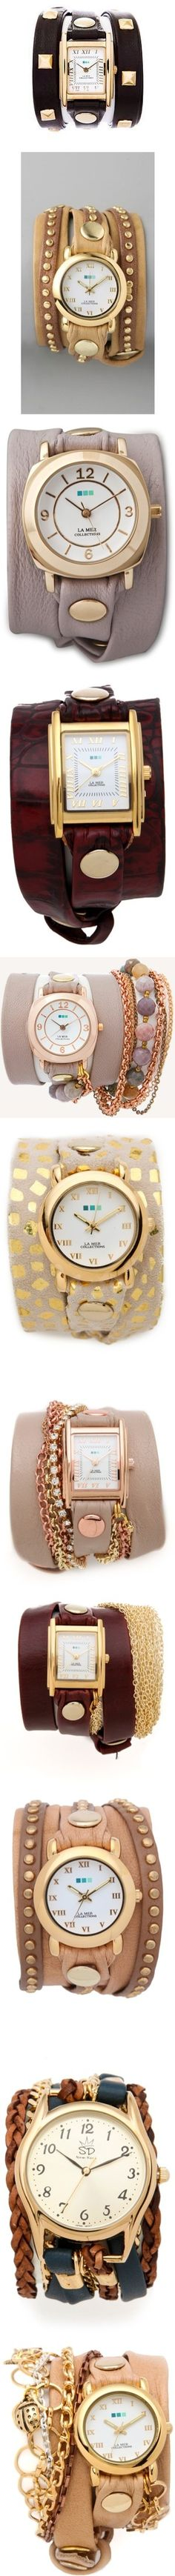 LOLO MODA: Trendy Watches - See more styles on 9999lolo.blogspot.com